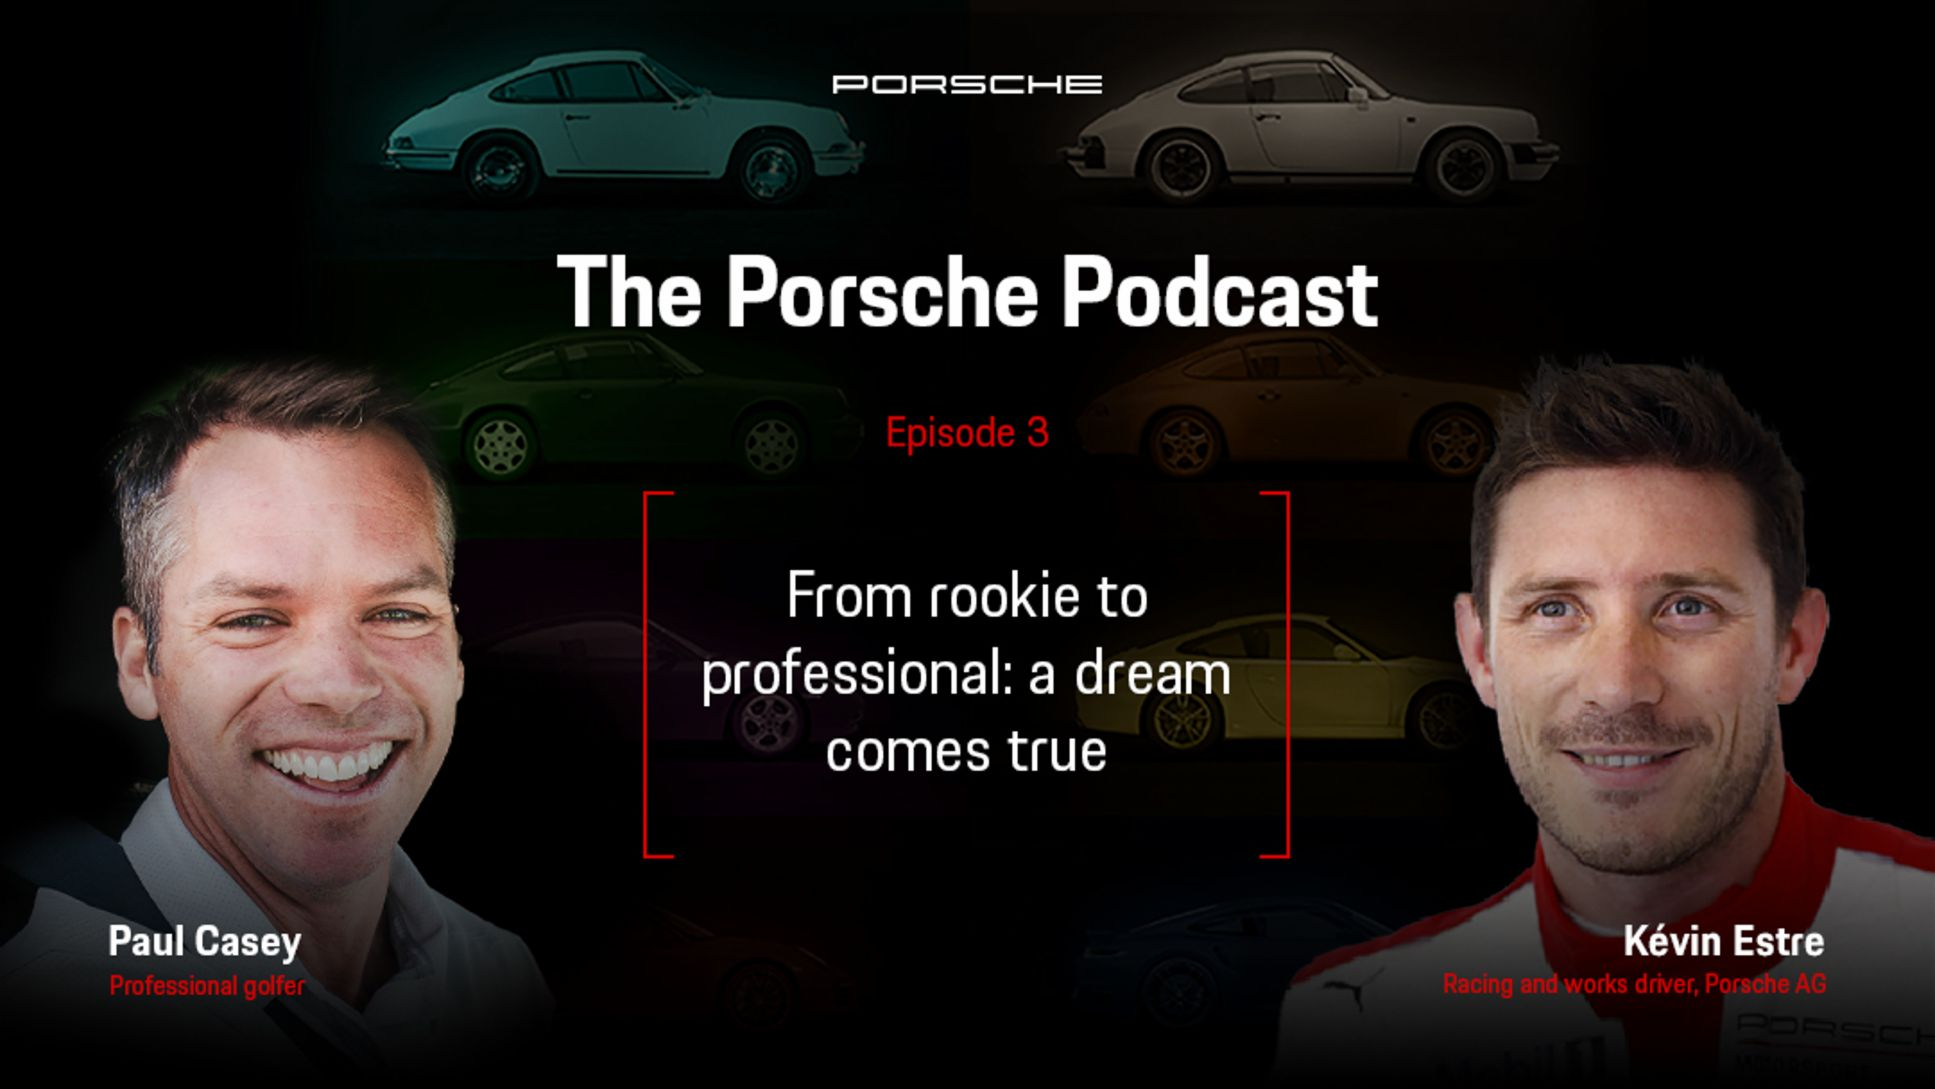 From rookie to professional with the 9:11 Porsche Podcast - Image 3